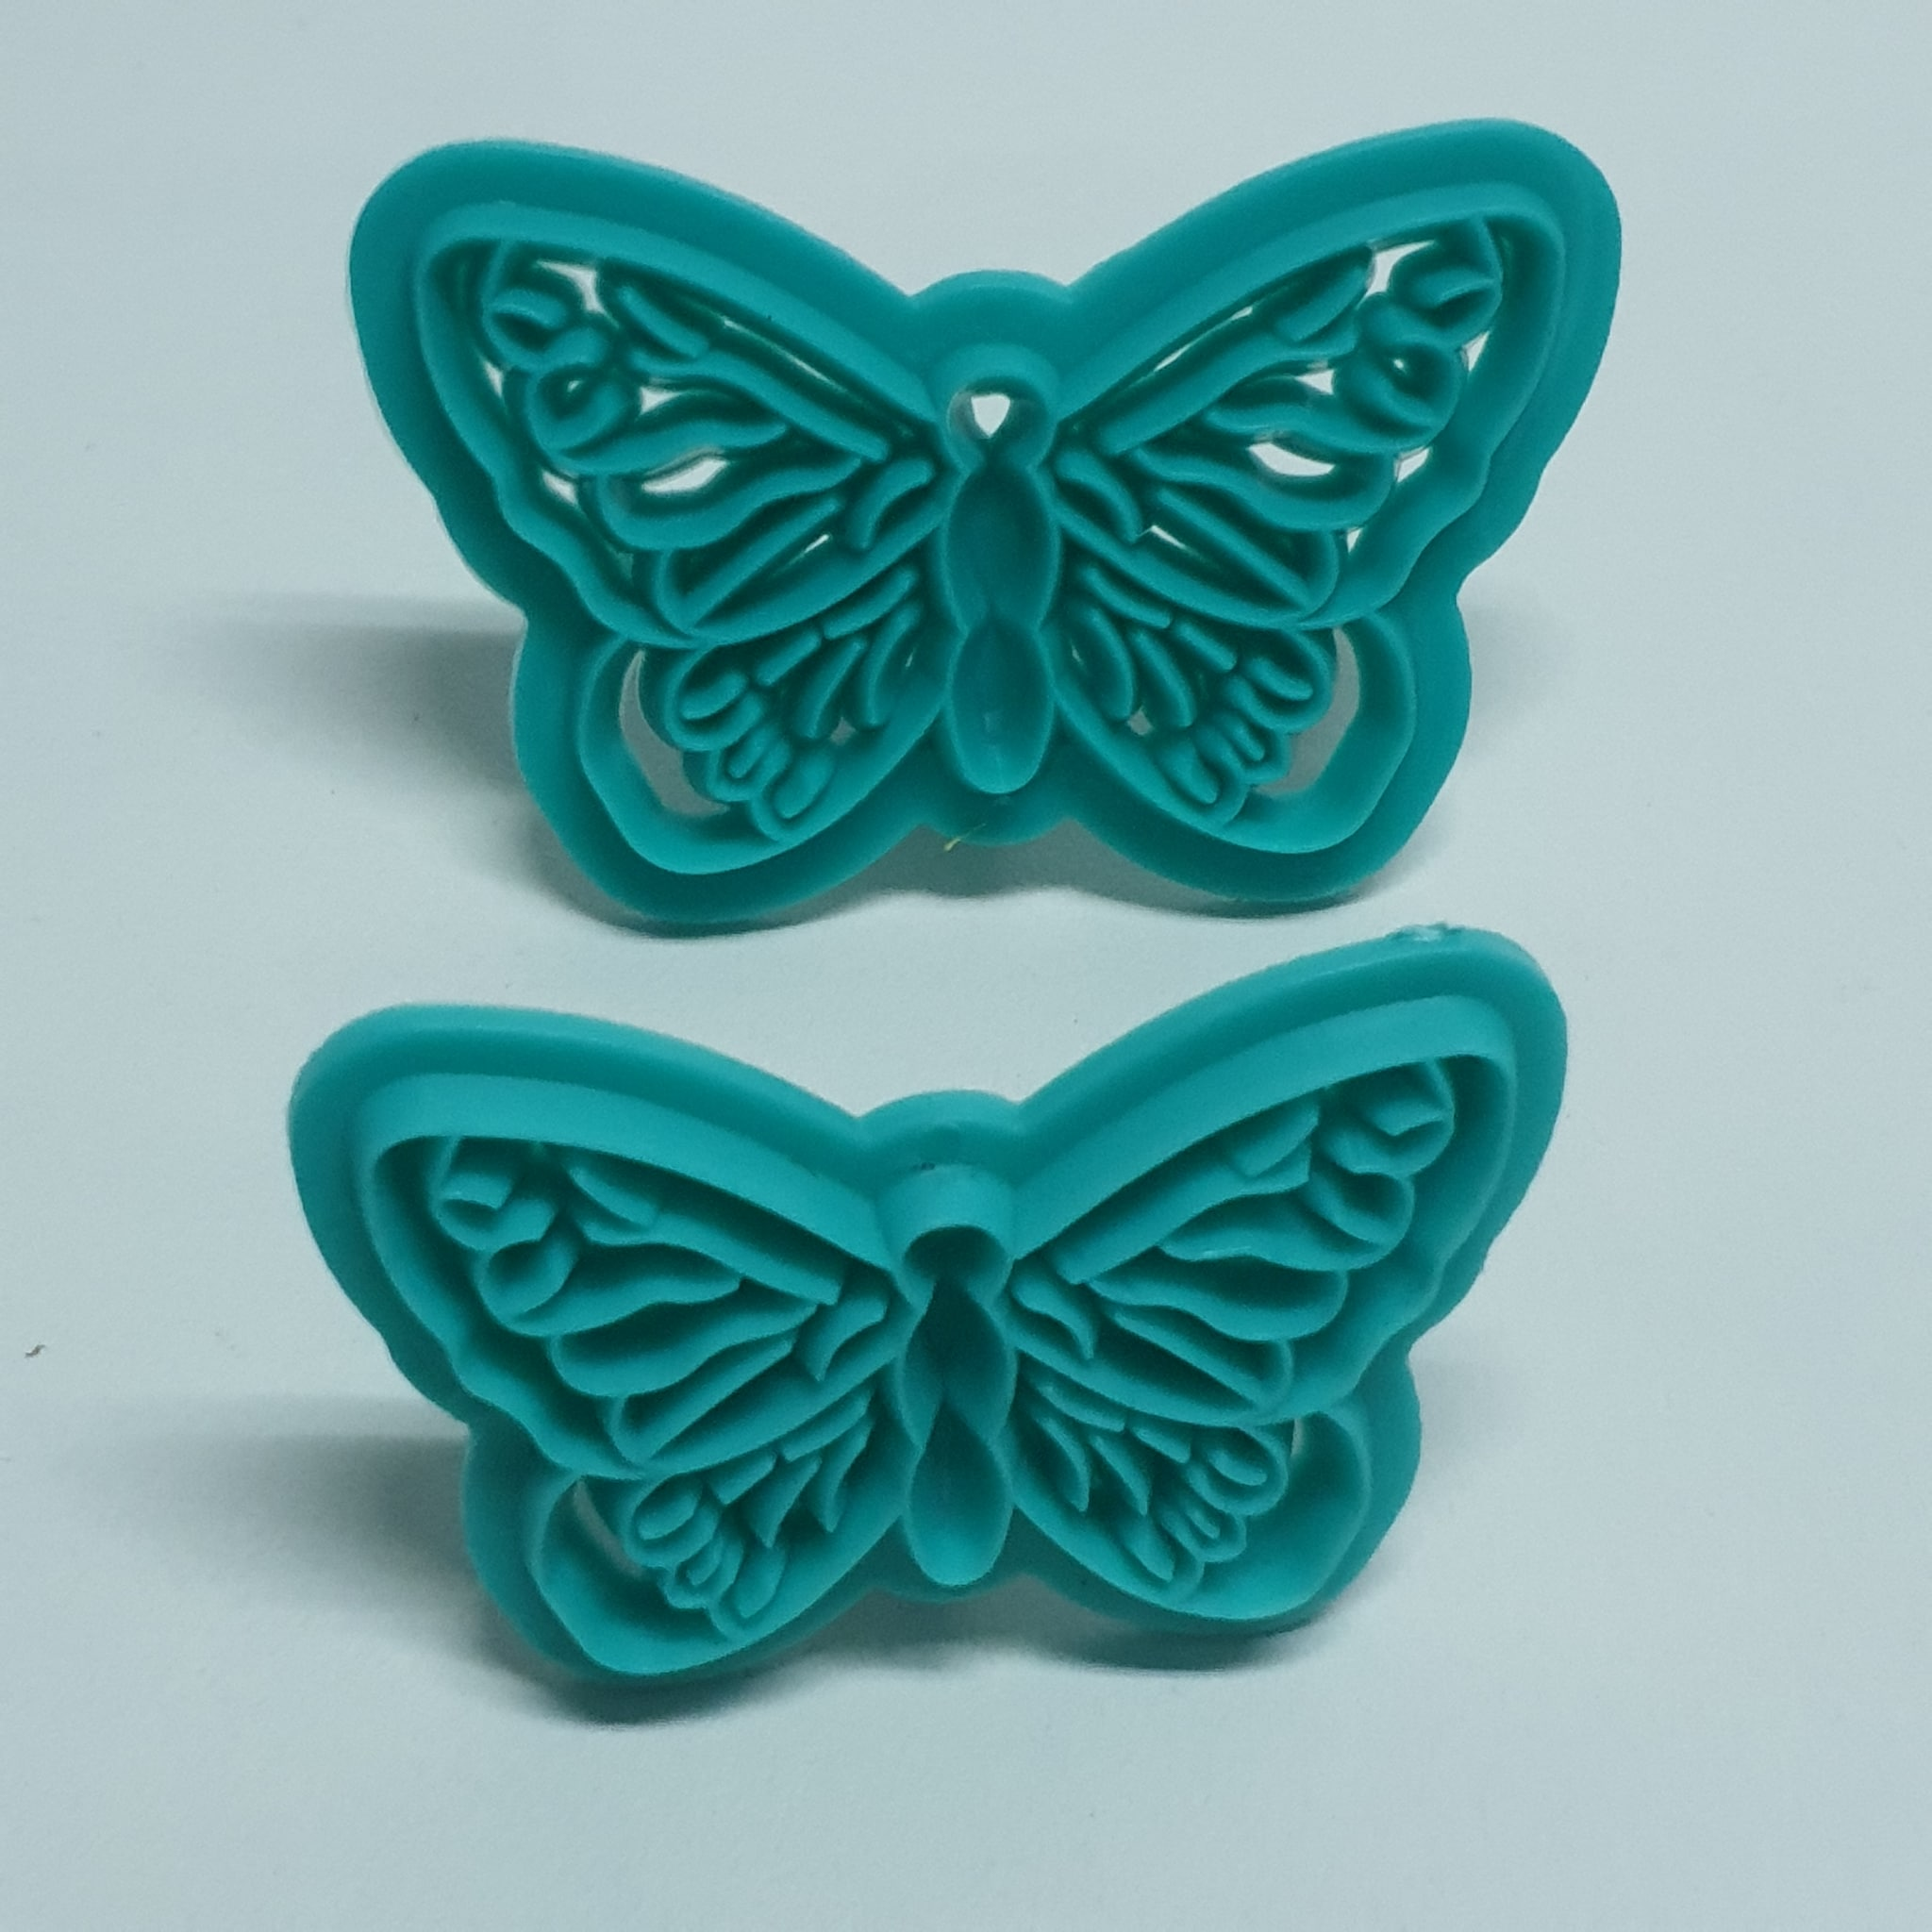 Butterfly Impression Cutter